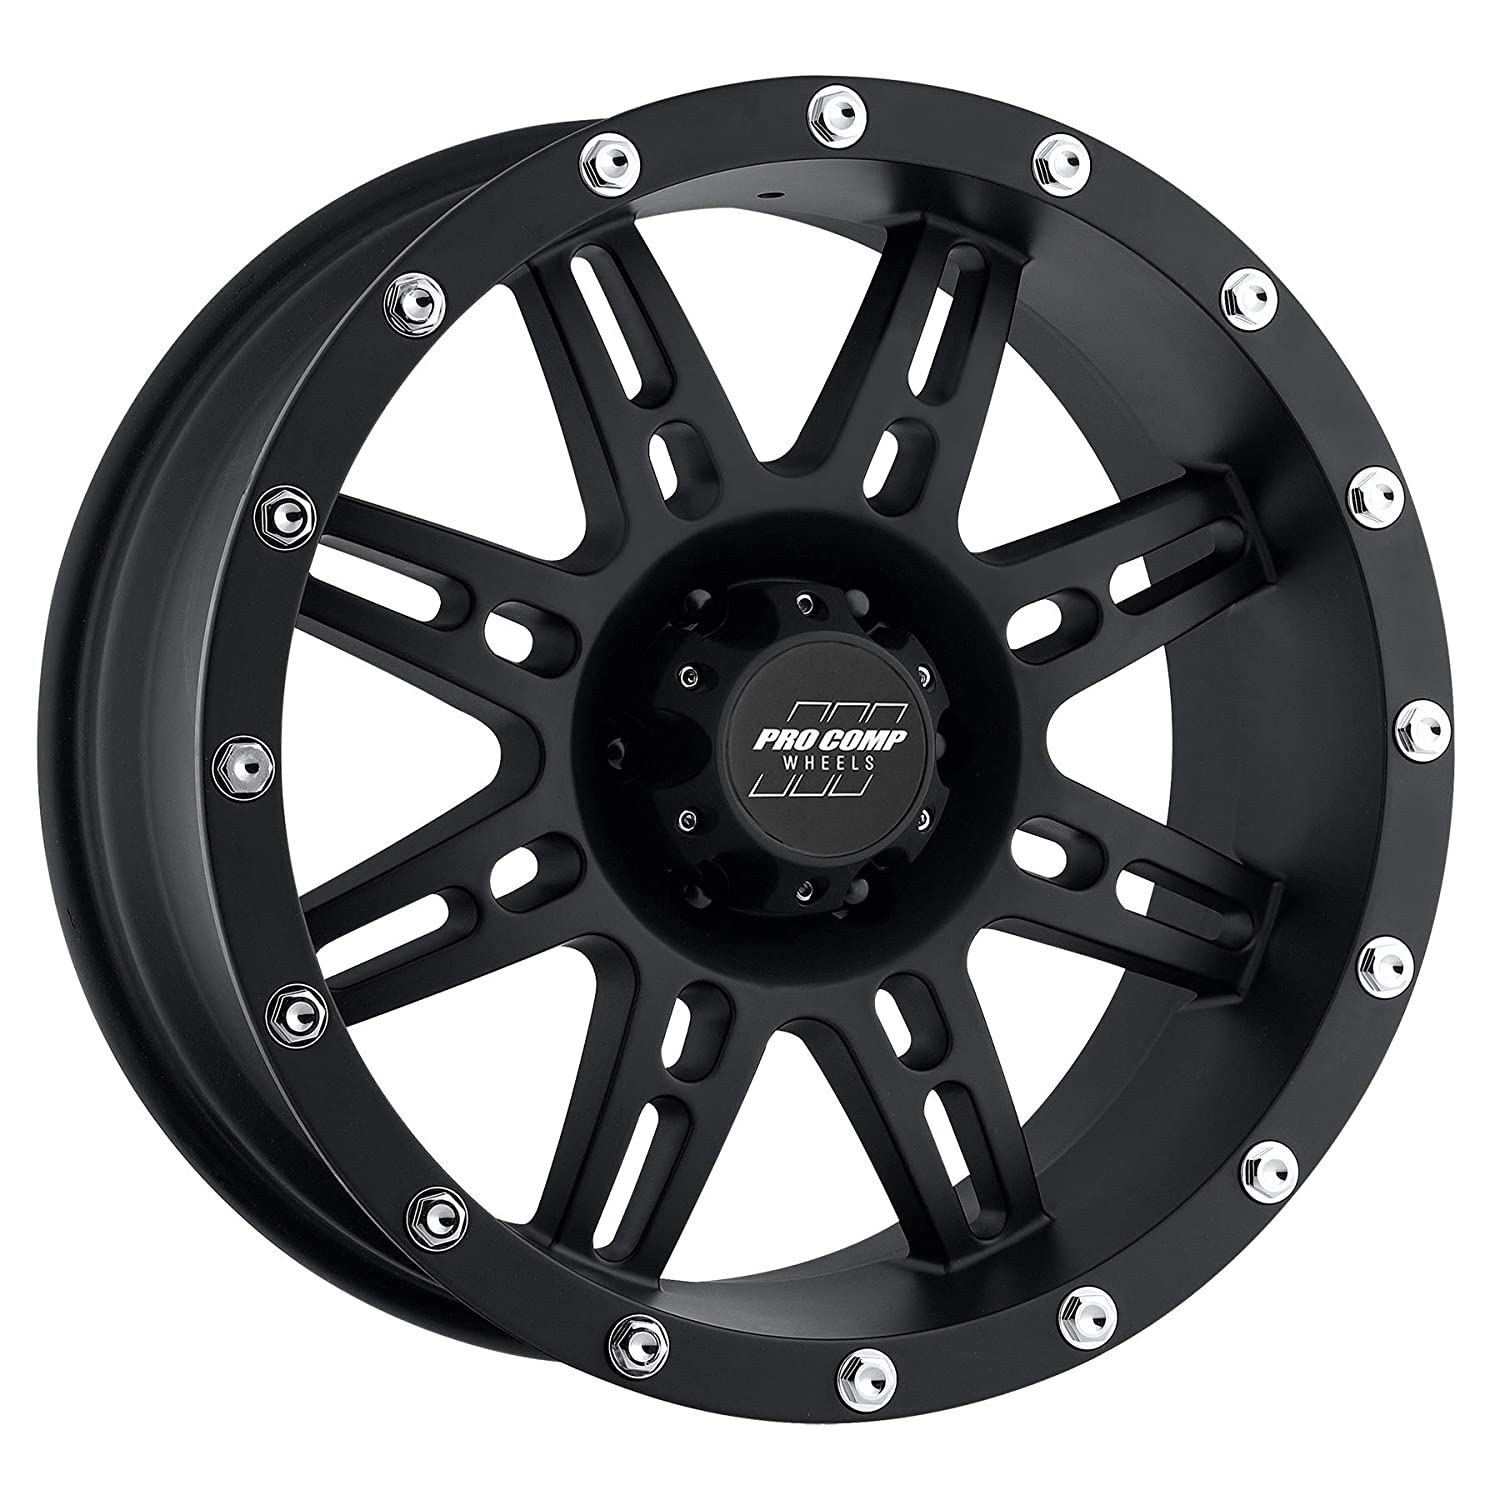 PRO COMP Series 31 Stryker Matte Black (16x8 / 6x5.5 / -6mm) Pro Comp Wheels PXA7031-6883